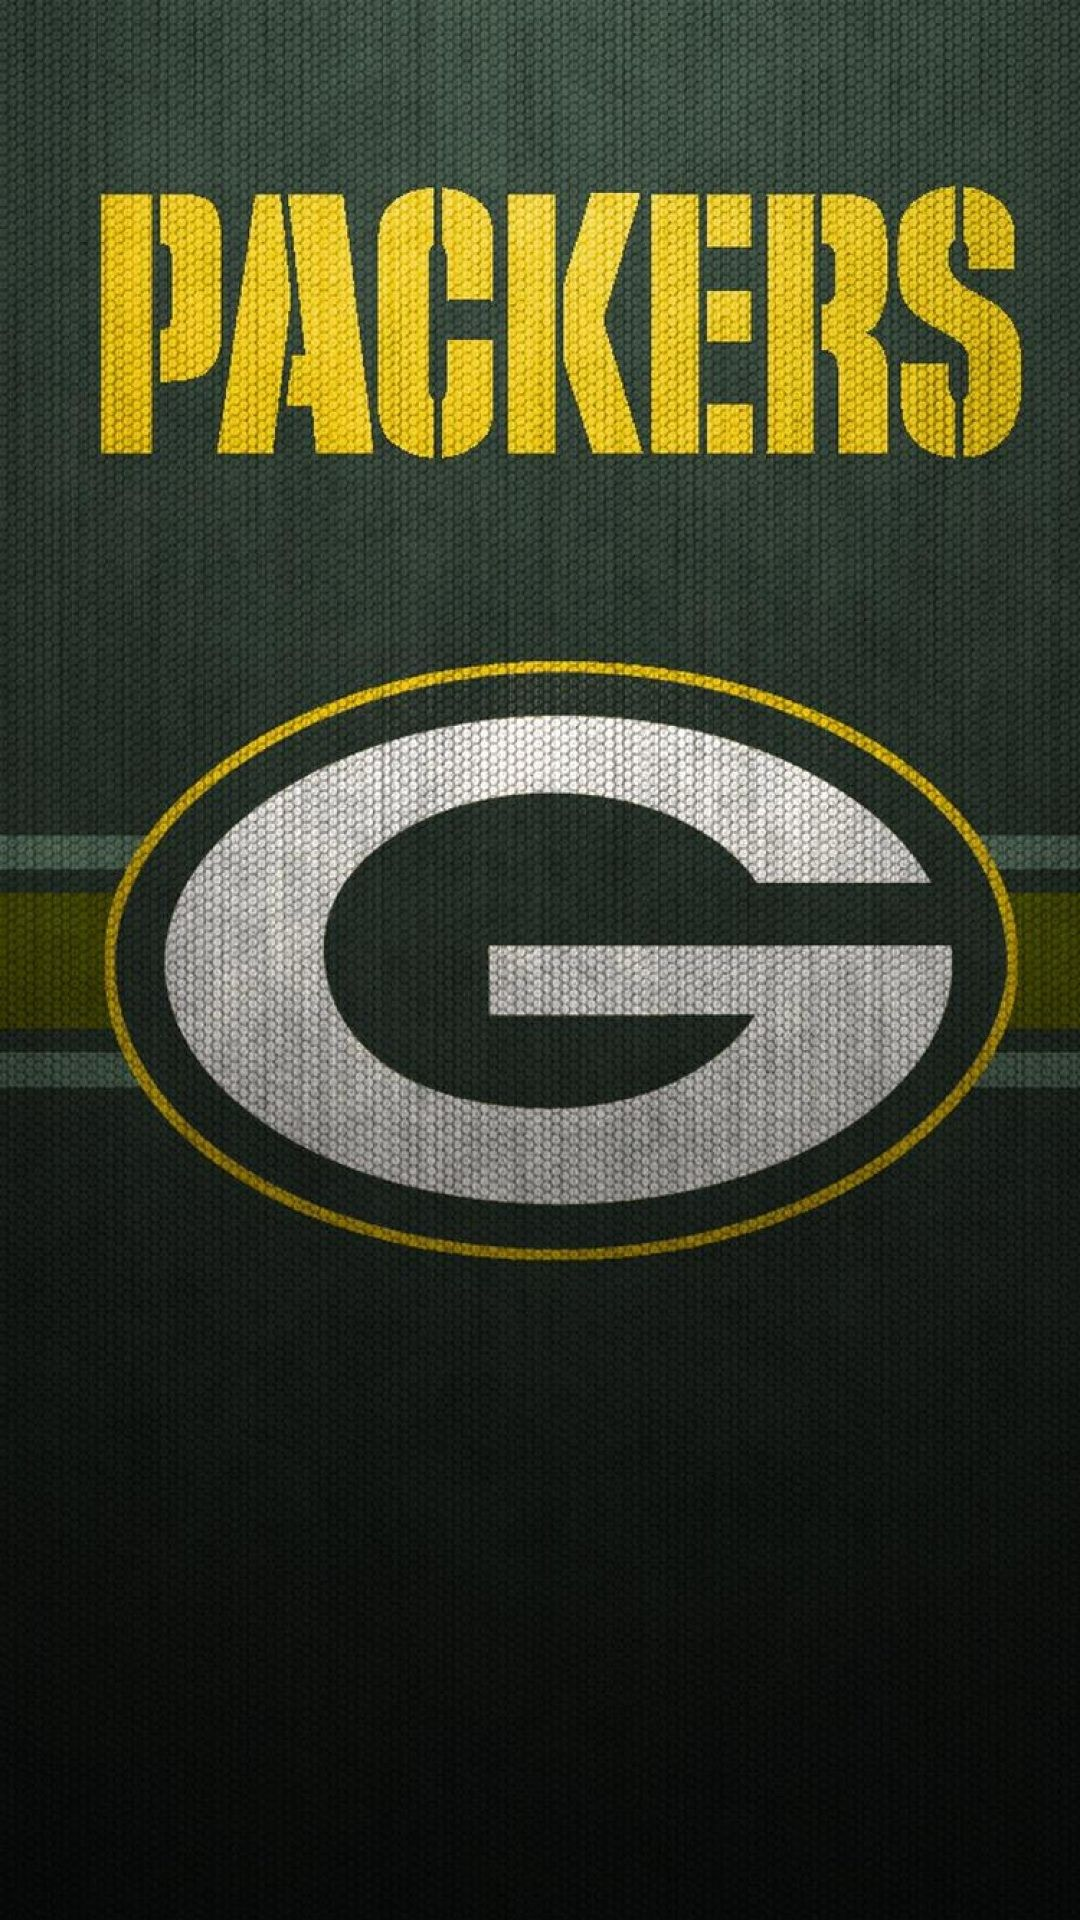 Aaron Rodgers Green Bay Packers Wallpaper Mobile On High Definition Wallpaper On Flowerswa In 2020 Green Bay Packers Wallpaper Green Bay Packers Green Bay Packers Fans